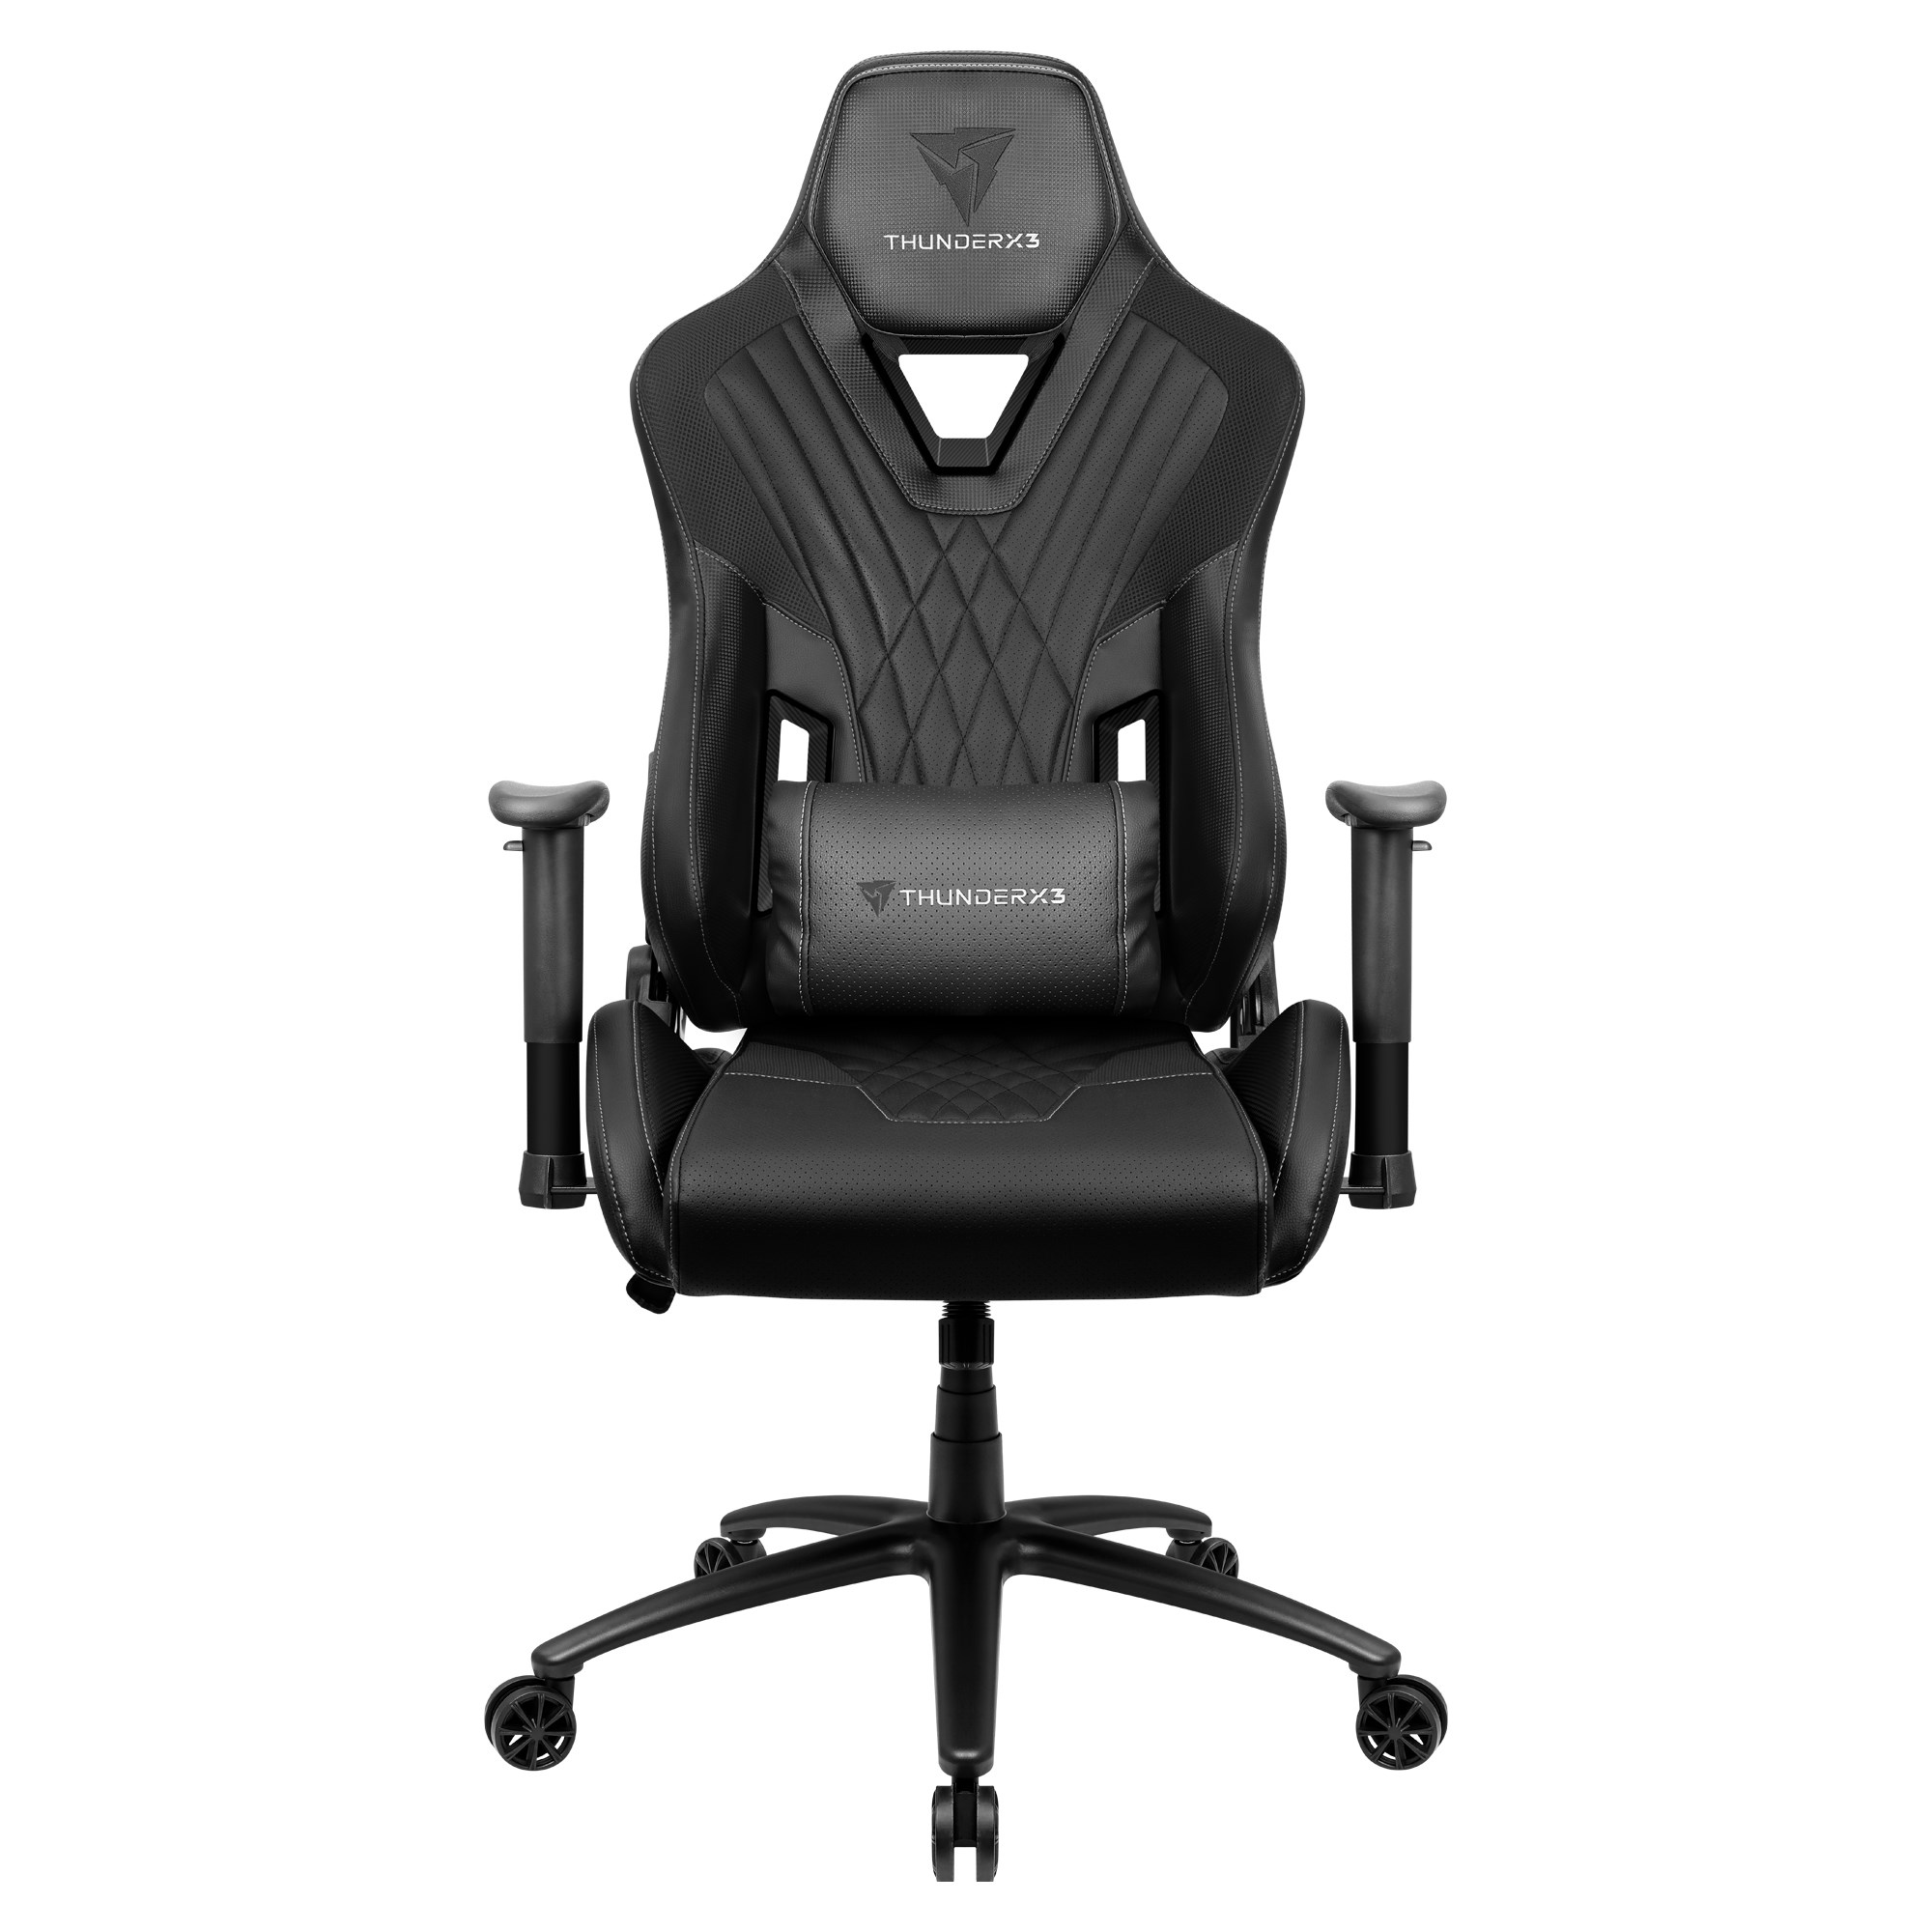 ThunderX3 DC3, Gaming Chair, Technology AIR, Breathable And Adjustable, Black